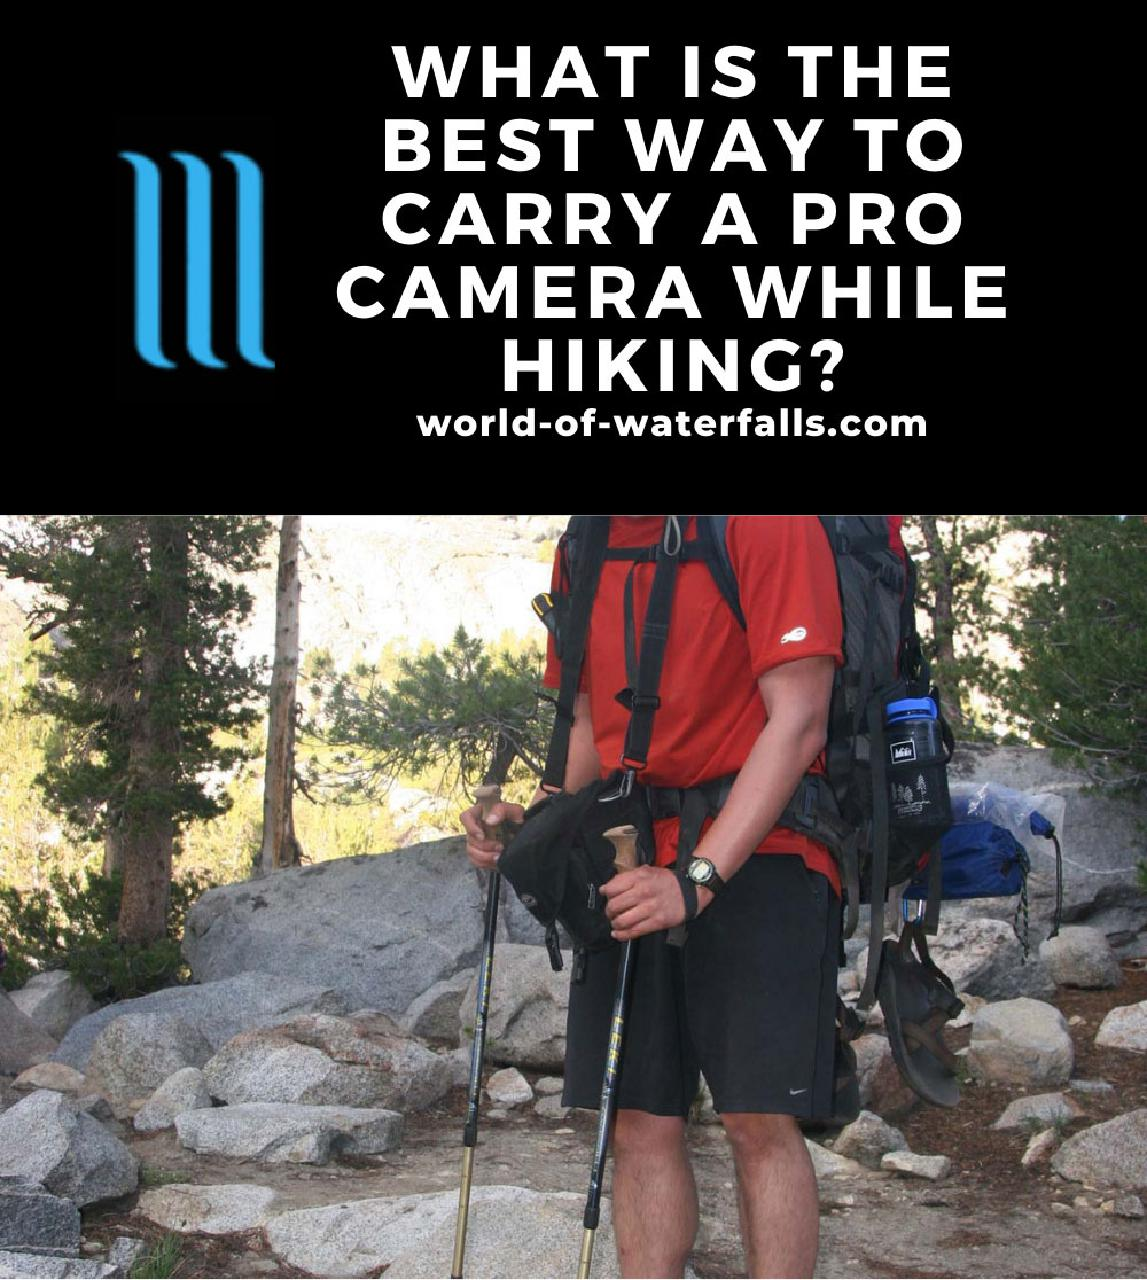 That's me with my preferred way to carry a semi-pro camera when hiking (or backpacking in this case)